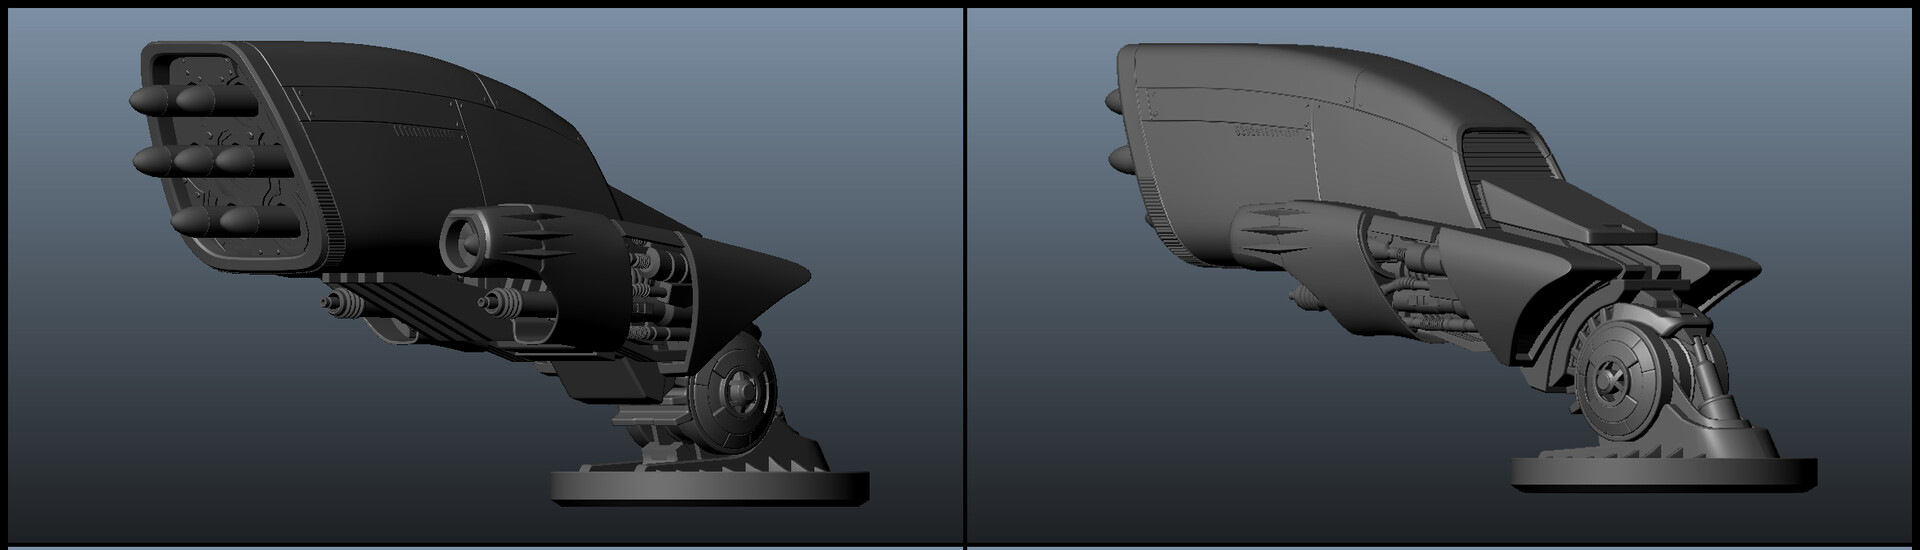 3D model of my concept for the weapon and the attachment mechanism.